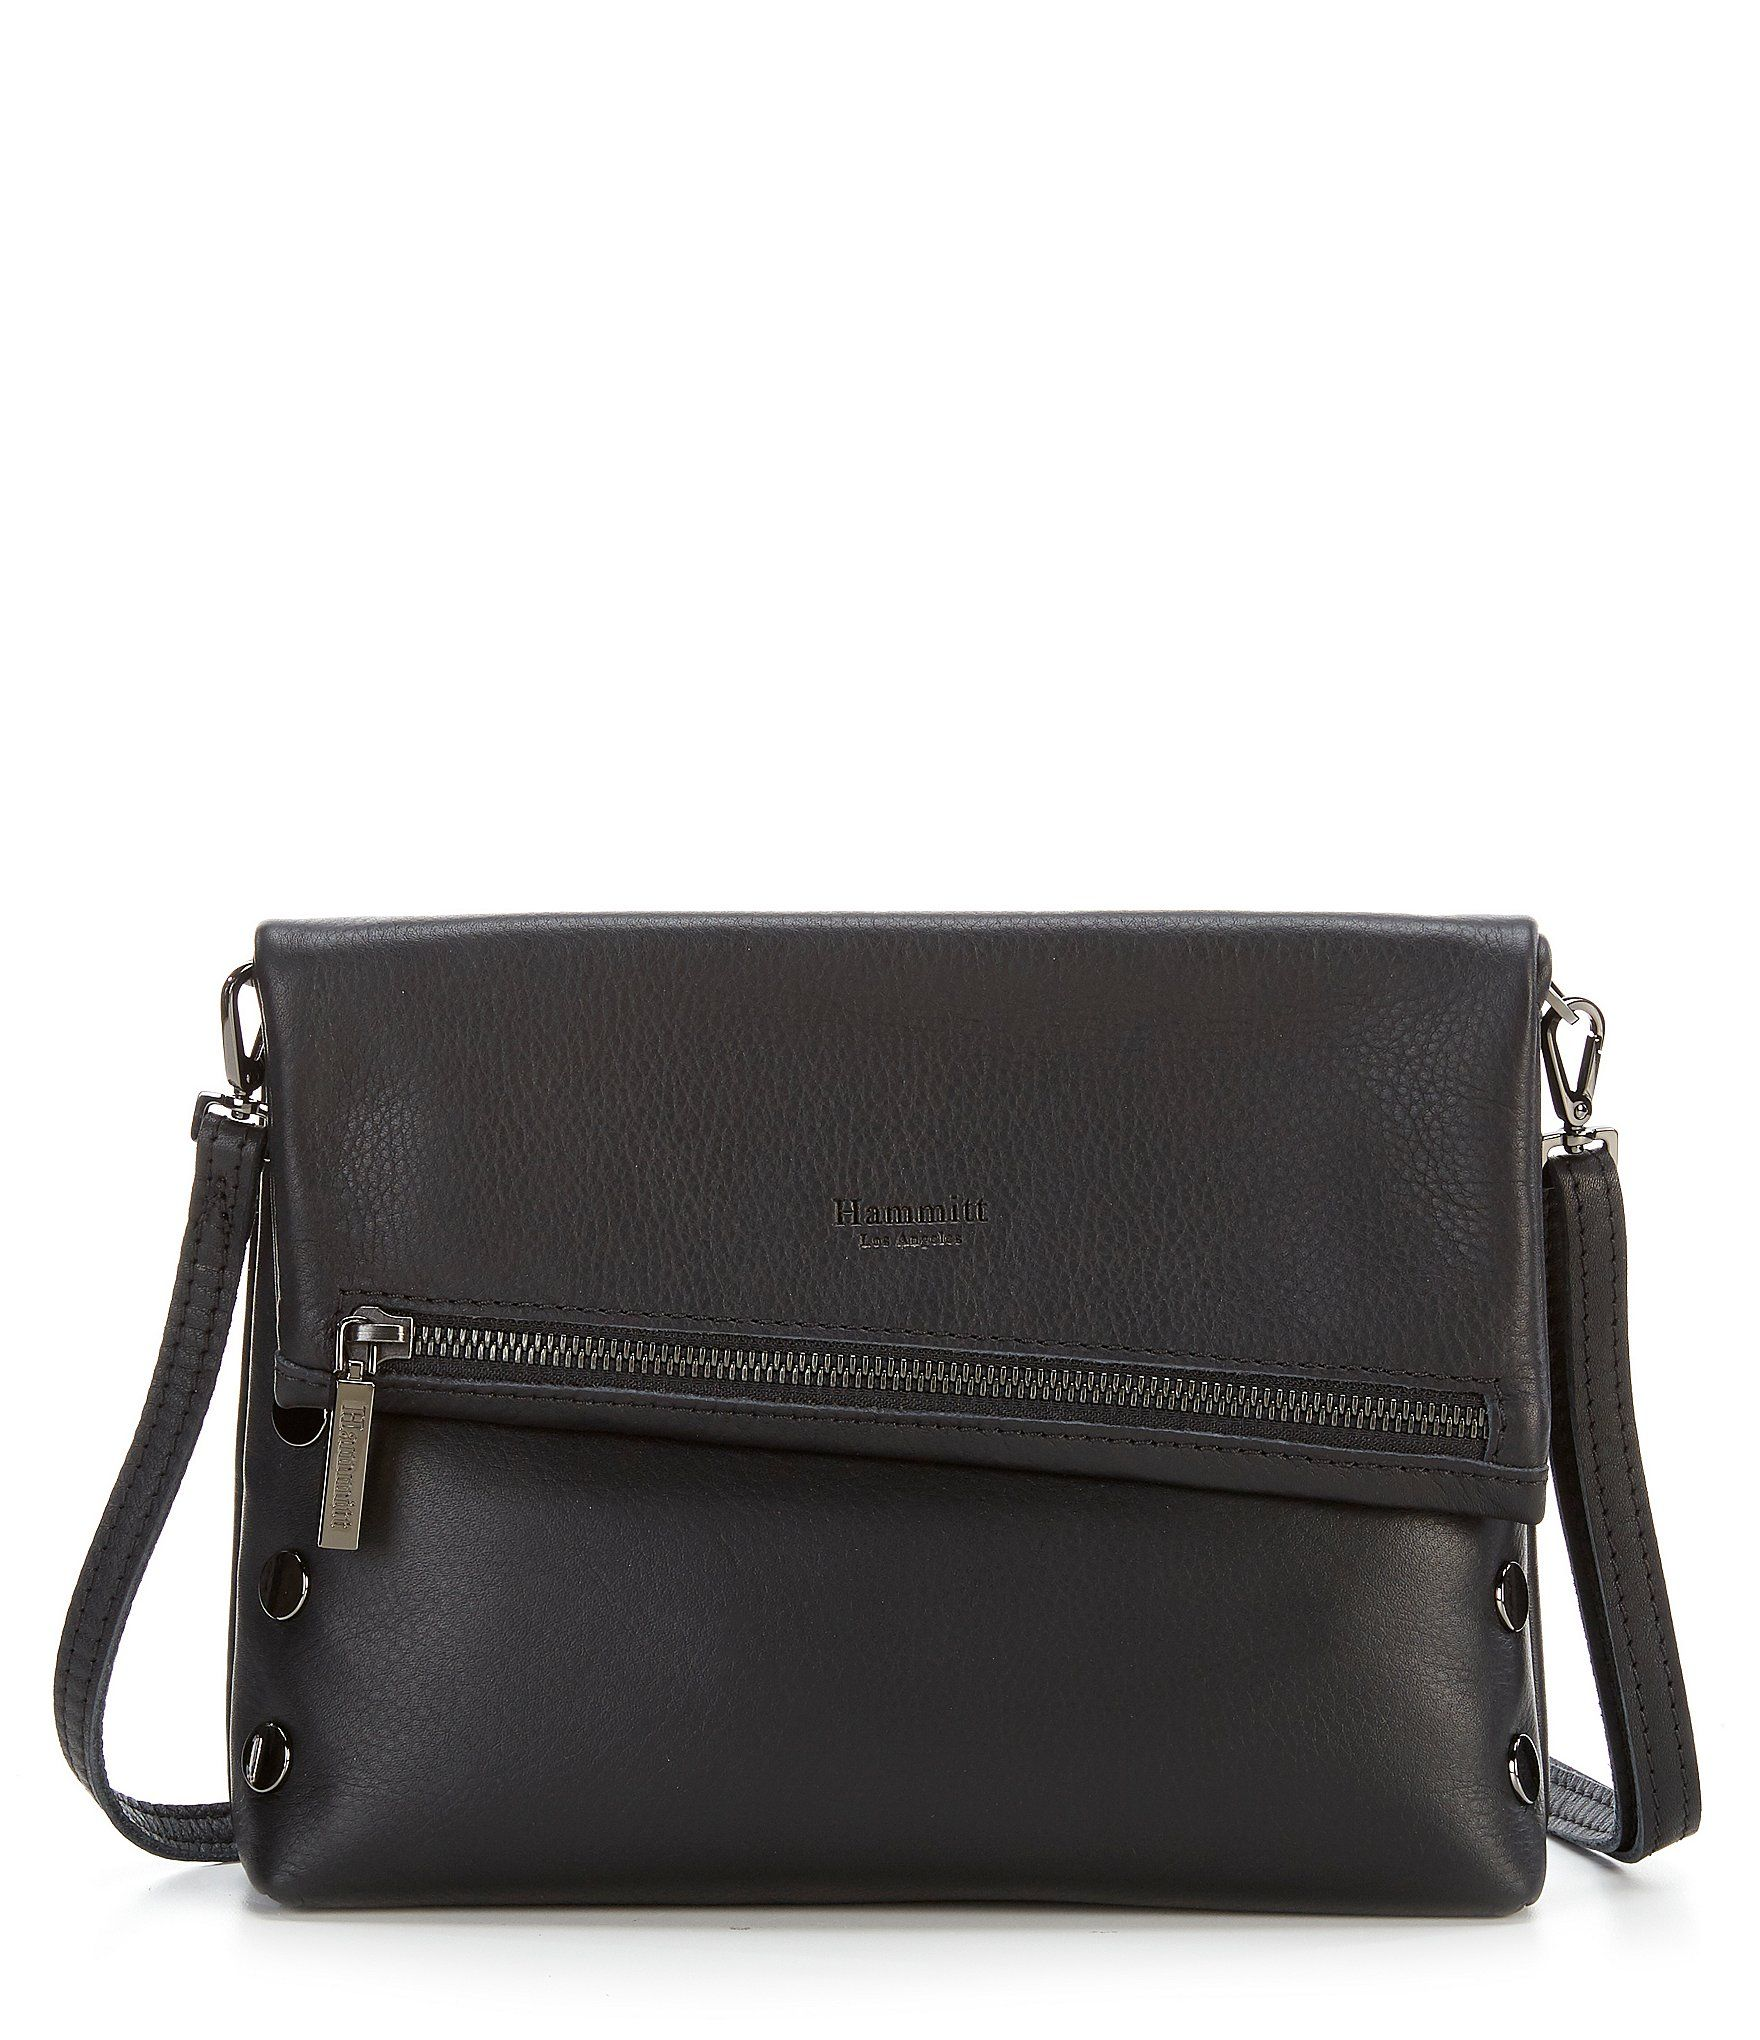 de3d53049 Shop for Hammitt VIP Studded Fold-Over Cross-Body Bag at Dillards.com.  Visit Dillards.com to find clothing, accessories, shoes, cosmetics & more.